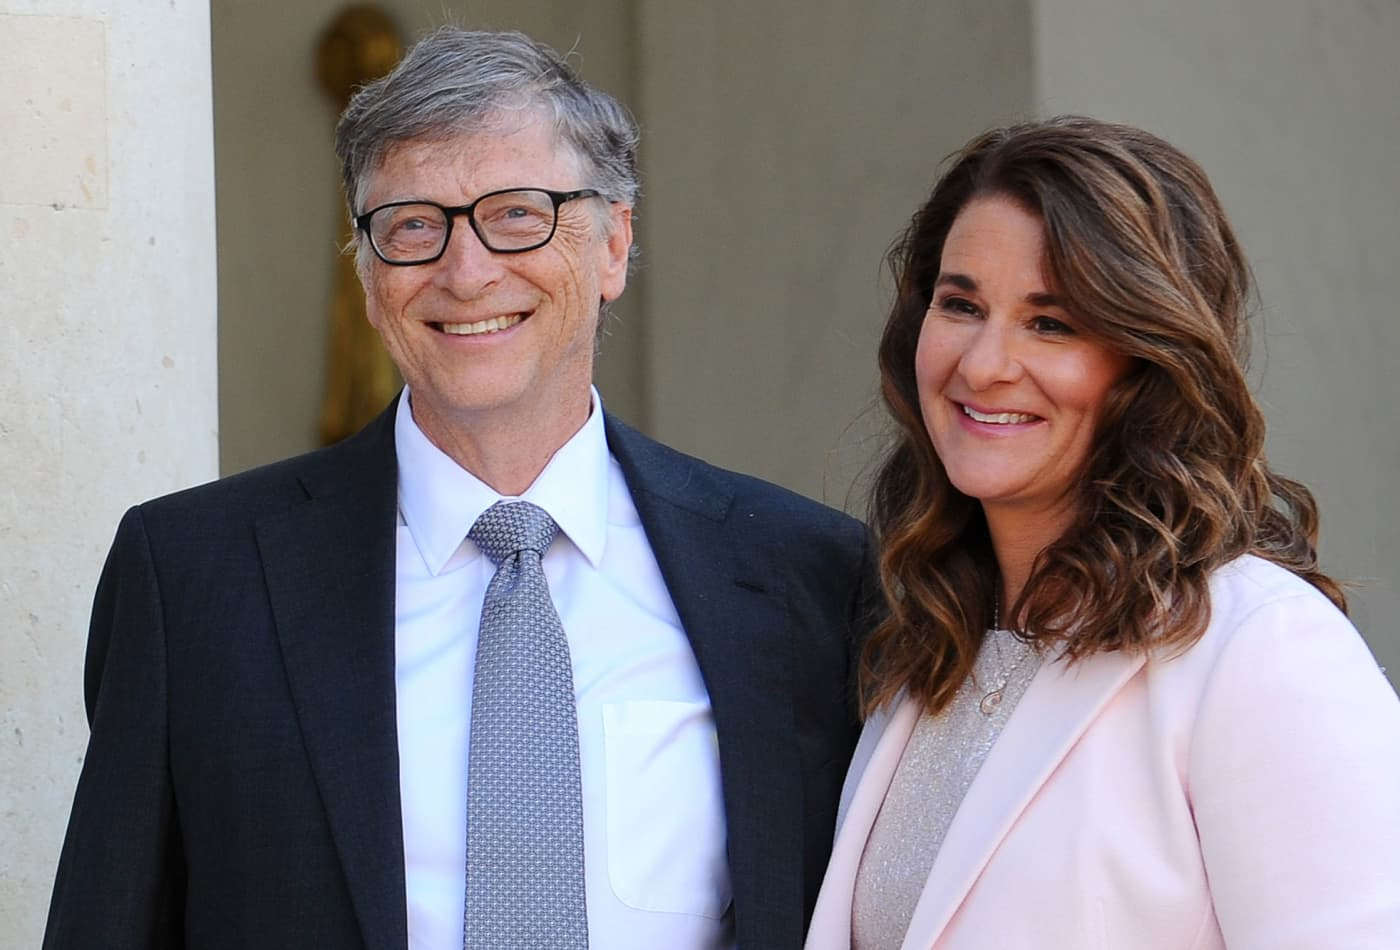 Bill and Melinda Gates apparently had no prenup. Here's why you should consider one, ultra-wealthy or not